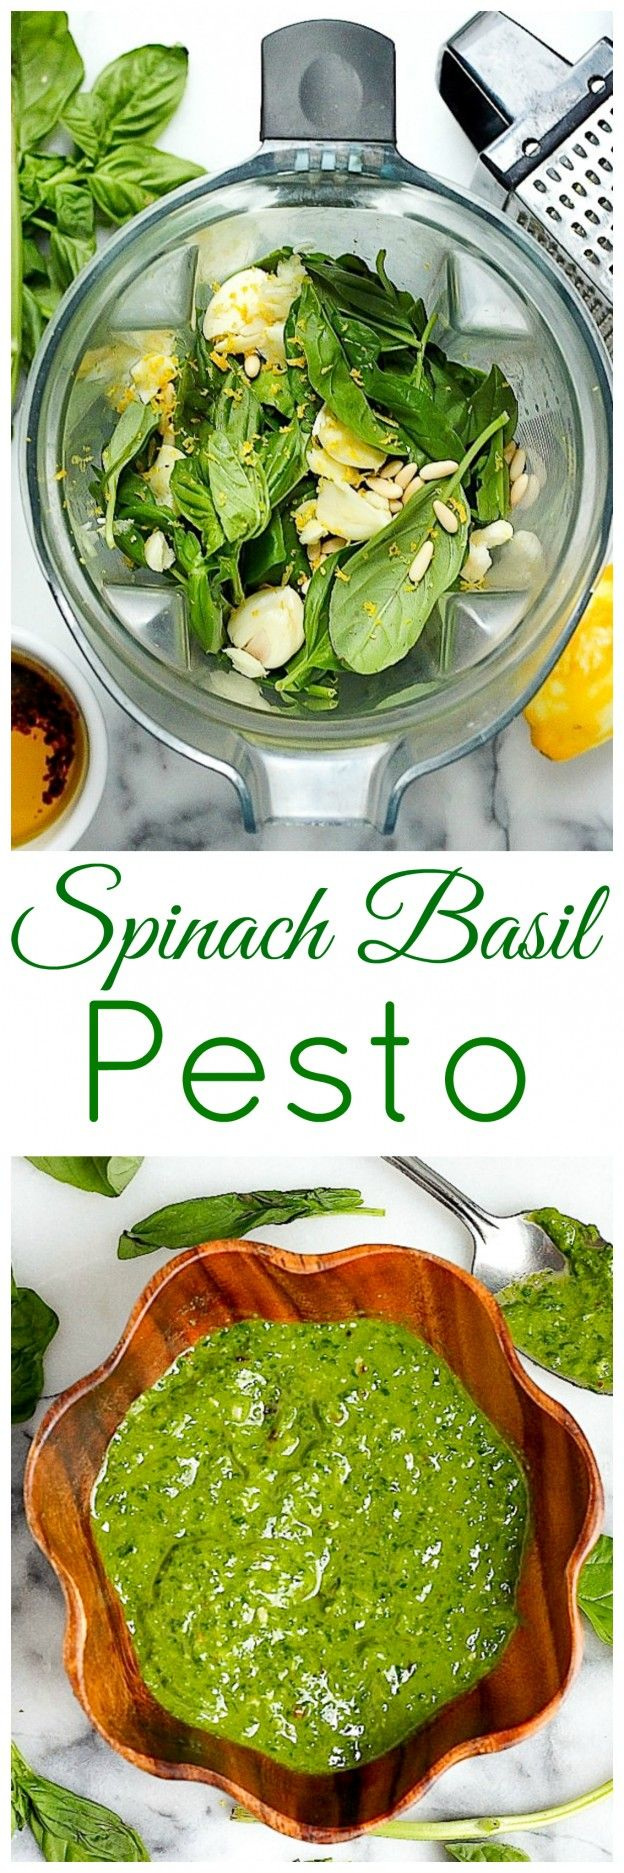 Skip the pine nuts!  Super Healthy Spinach Basil Pesto (Vegan // Dairy Free // Gluten Free)